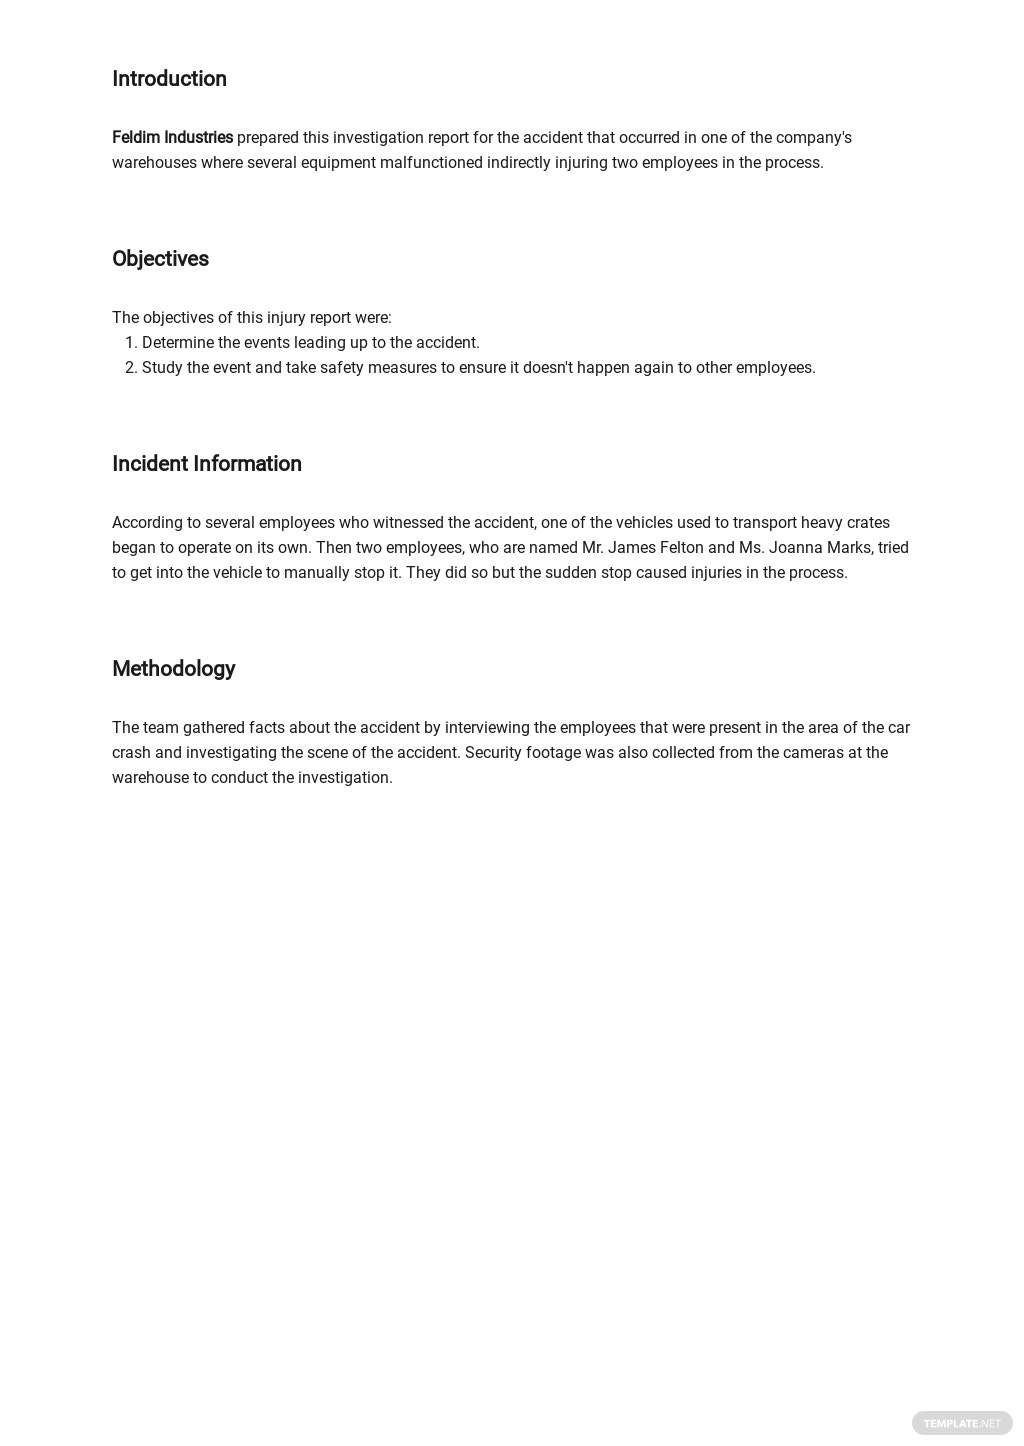 Accident Incident Investigation Report Template 1.jpe